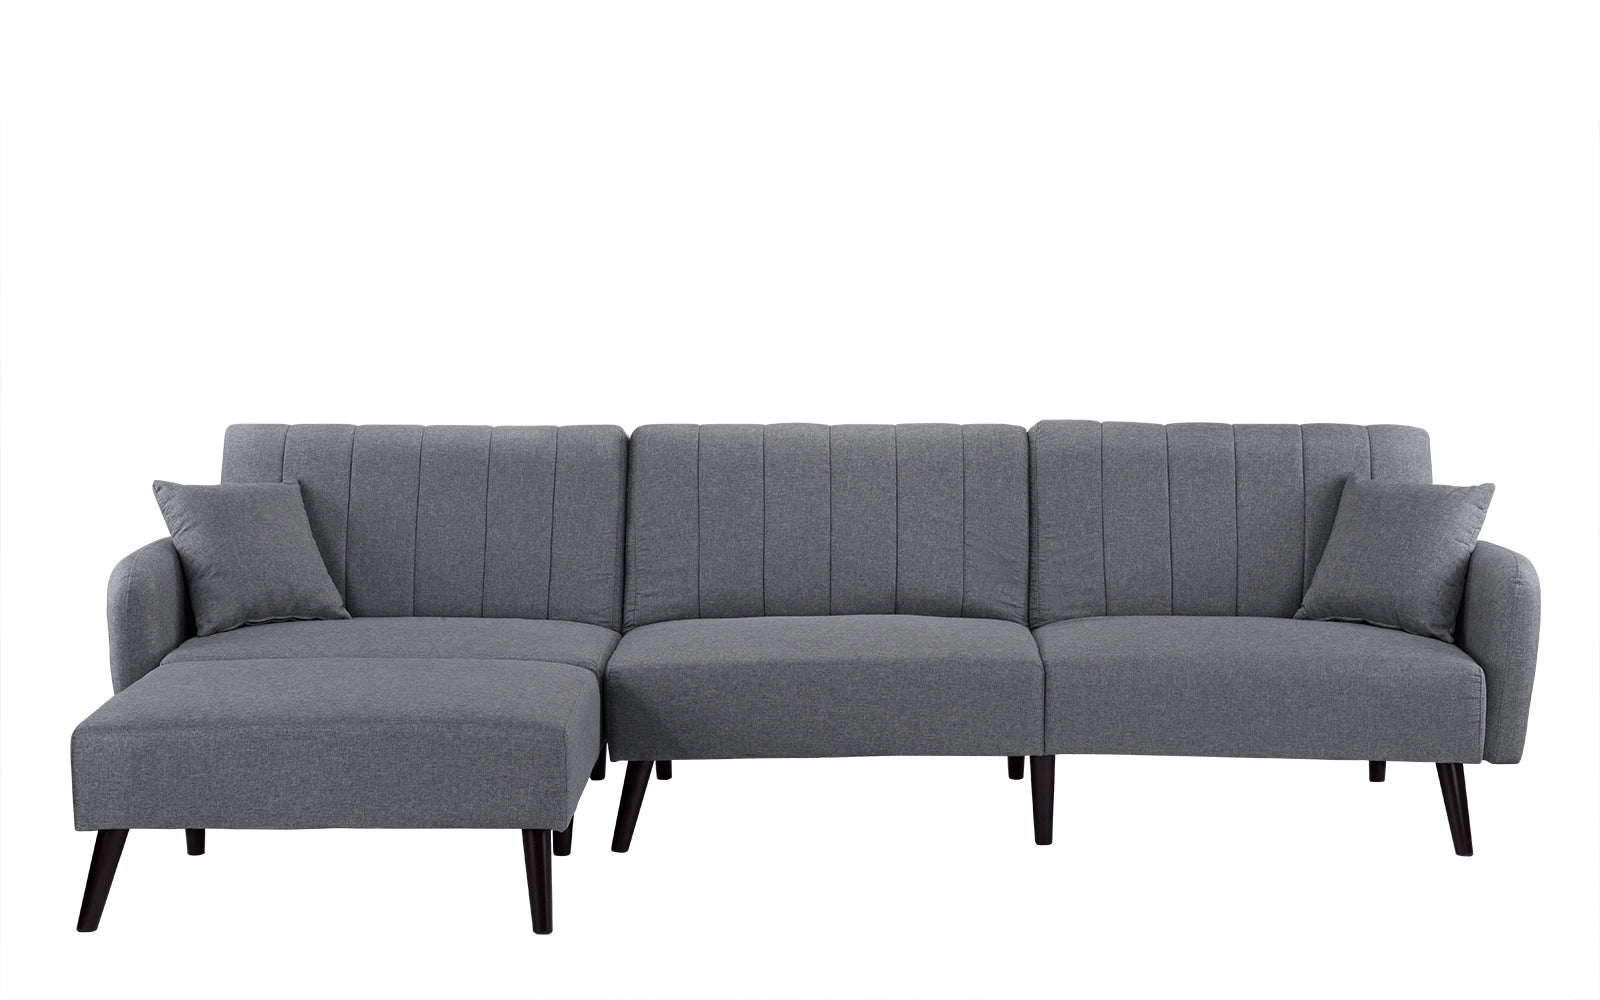 ... Skyler Mid Century Modern Style Linen Sleeper Futon Sofa In Light Grey  ...